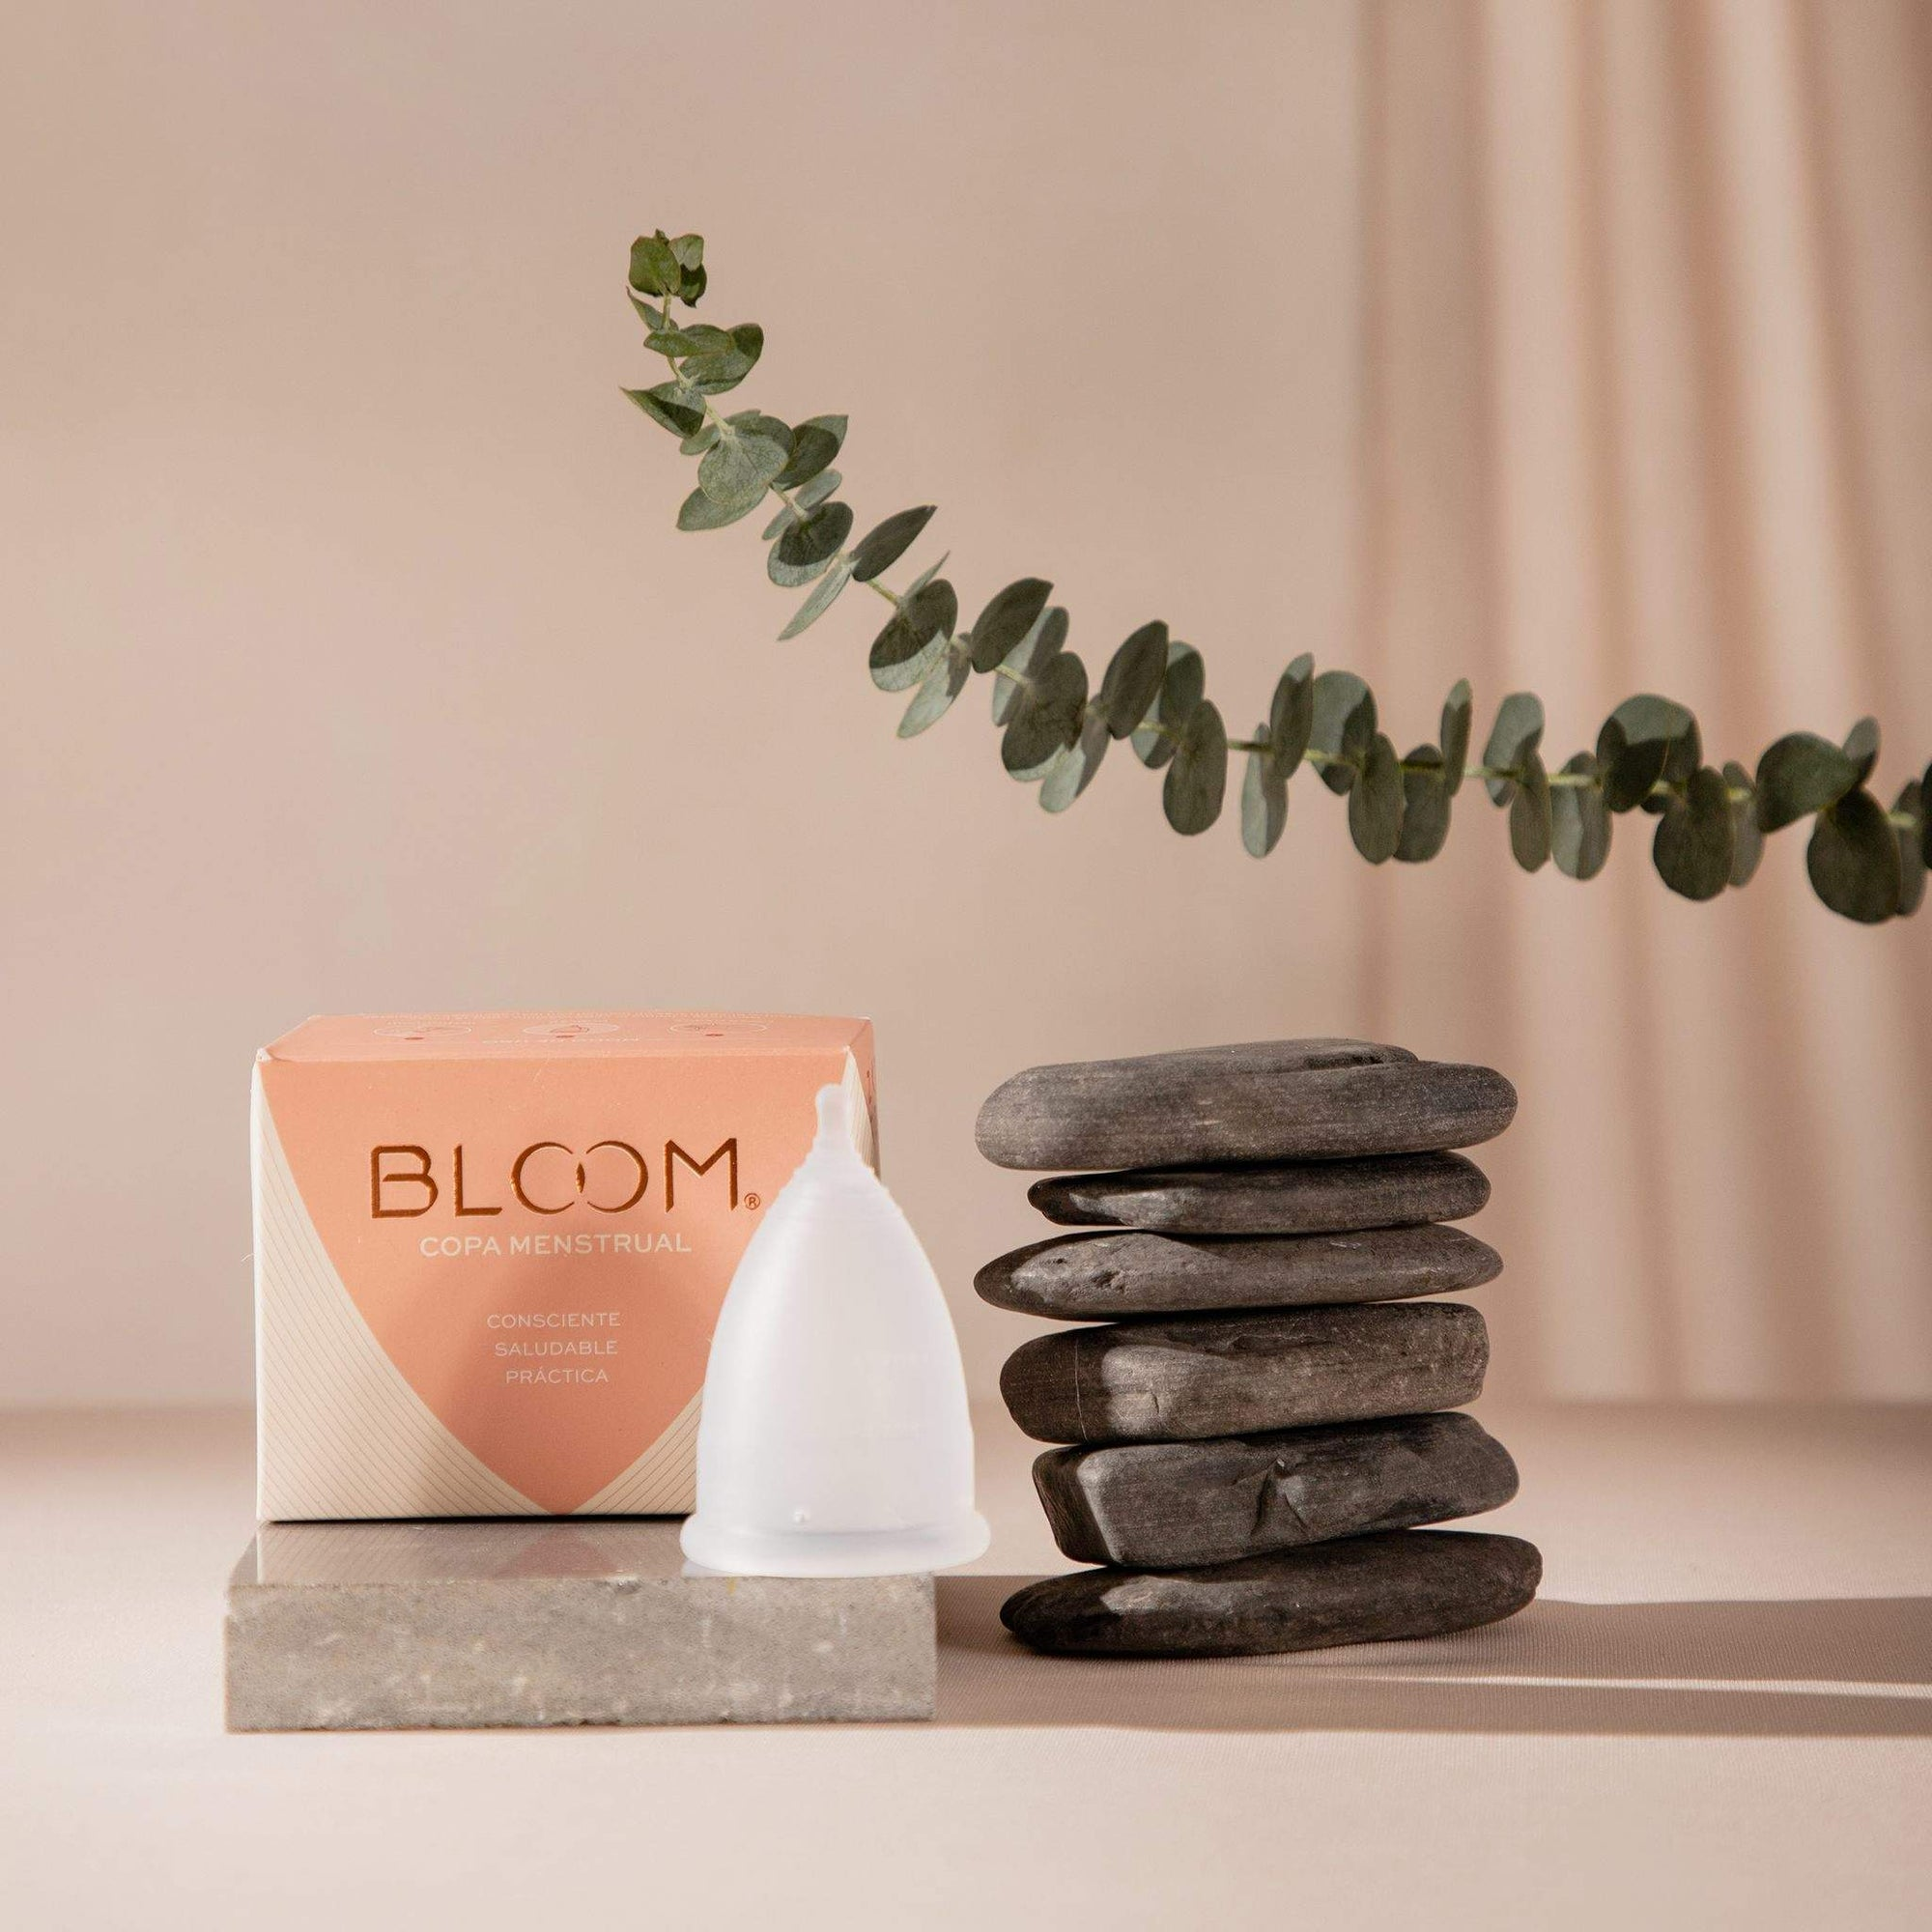 Copa Menstrual BLOOM - Grande